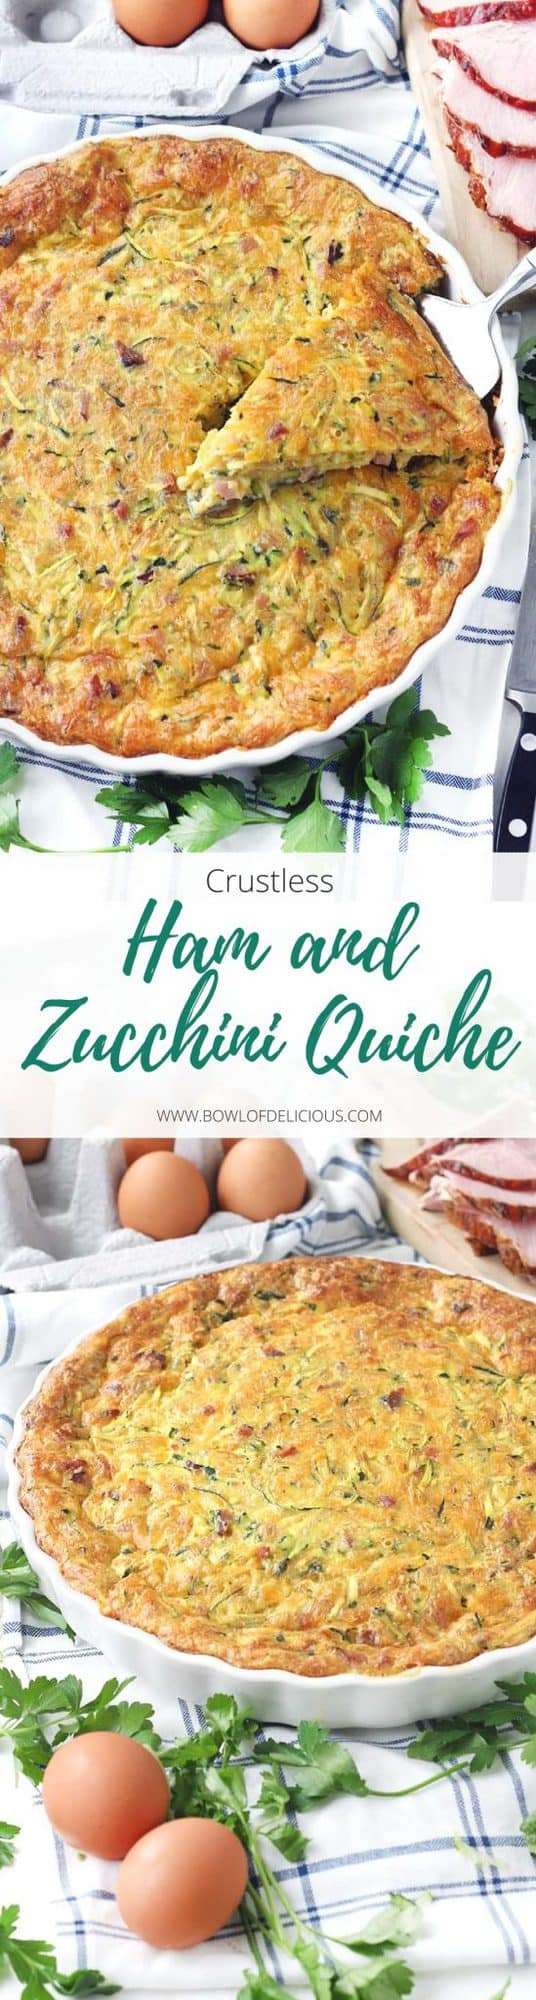 This crustless ham and zucchini quiche recipe is a great way to use up leftover ham  and feed a crowd easily! It can be served at room temperature so you can easily make it ahead of time.